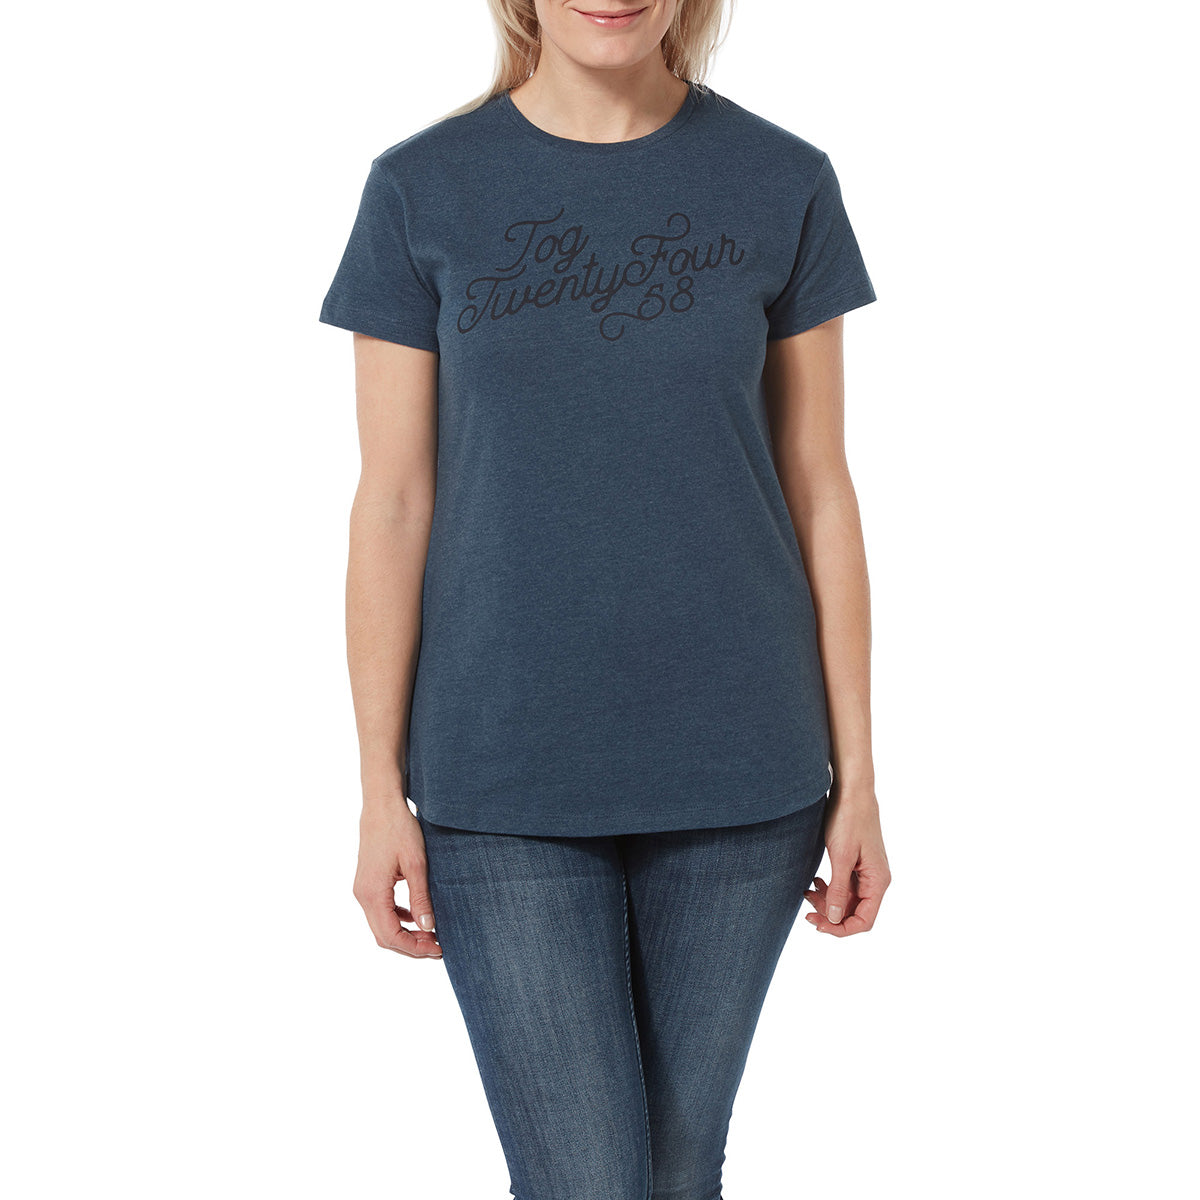 Harome Womens Graphic T-Shirt Curly - Denim Marl